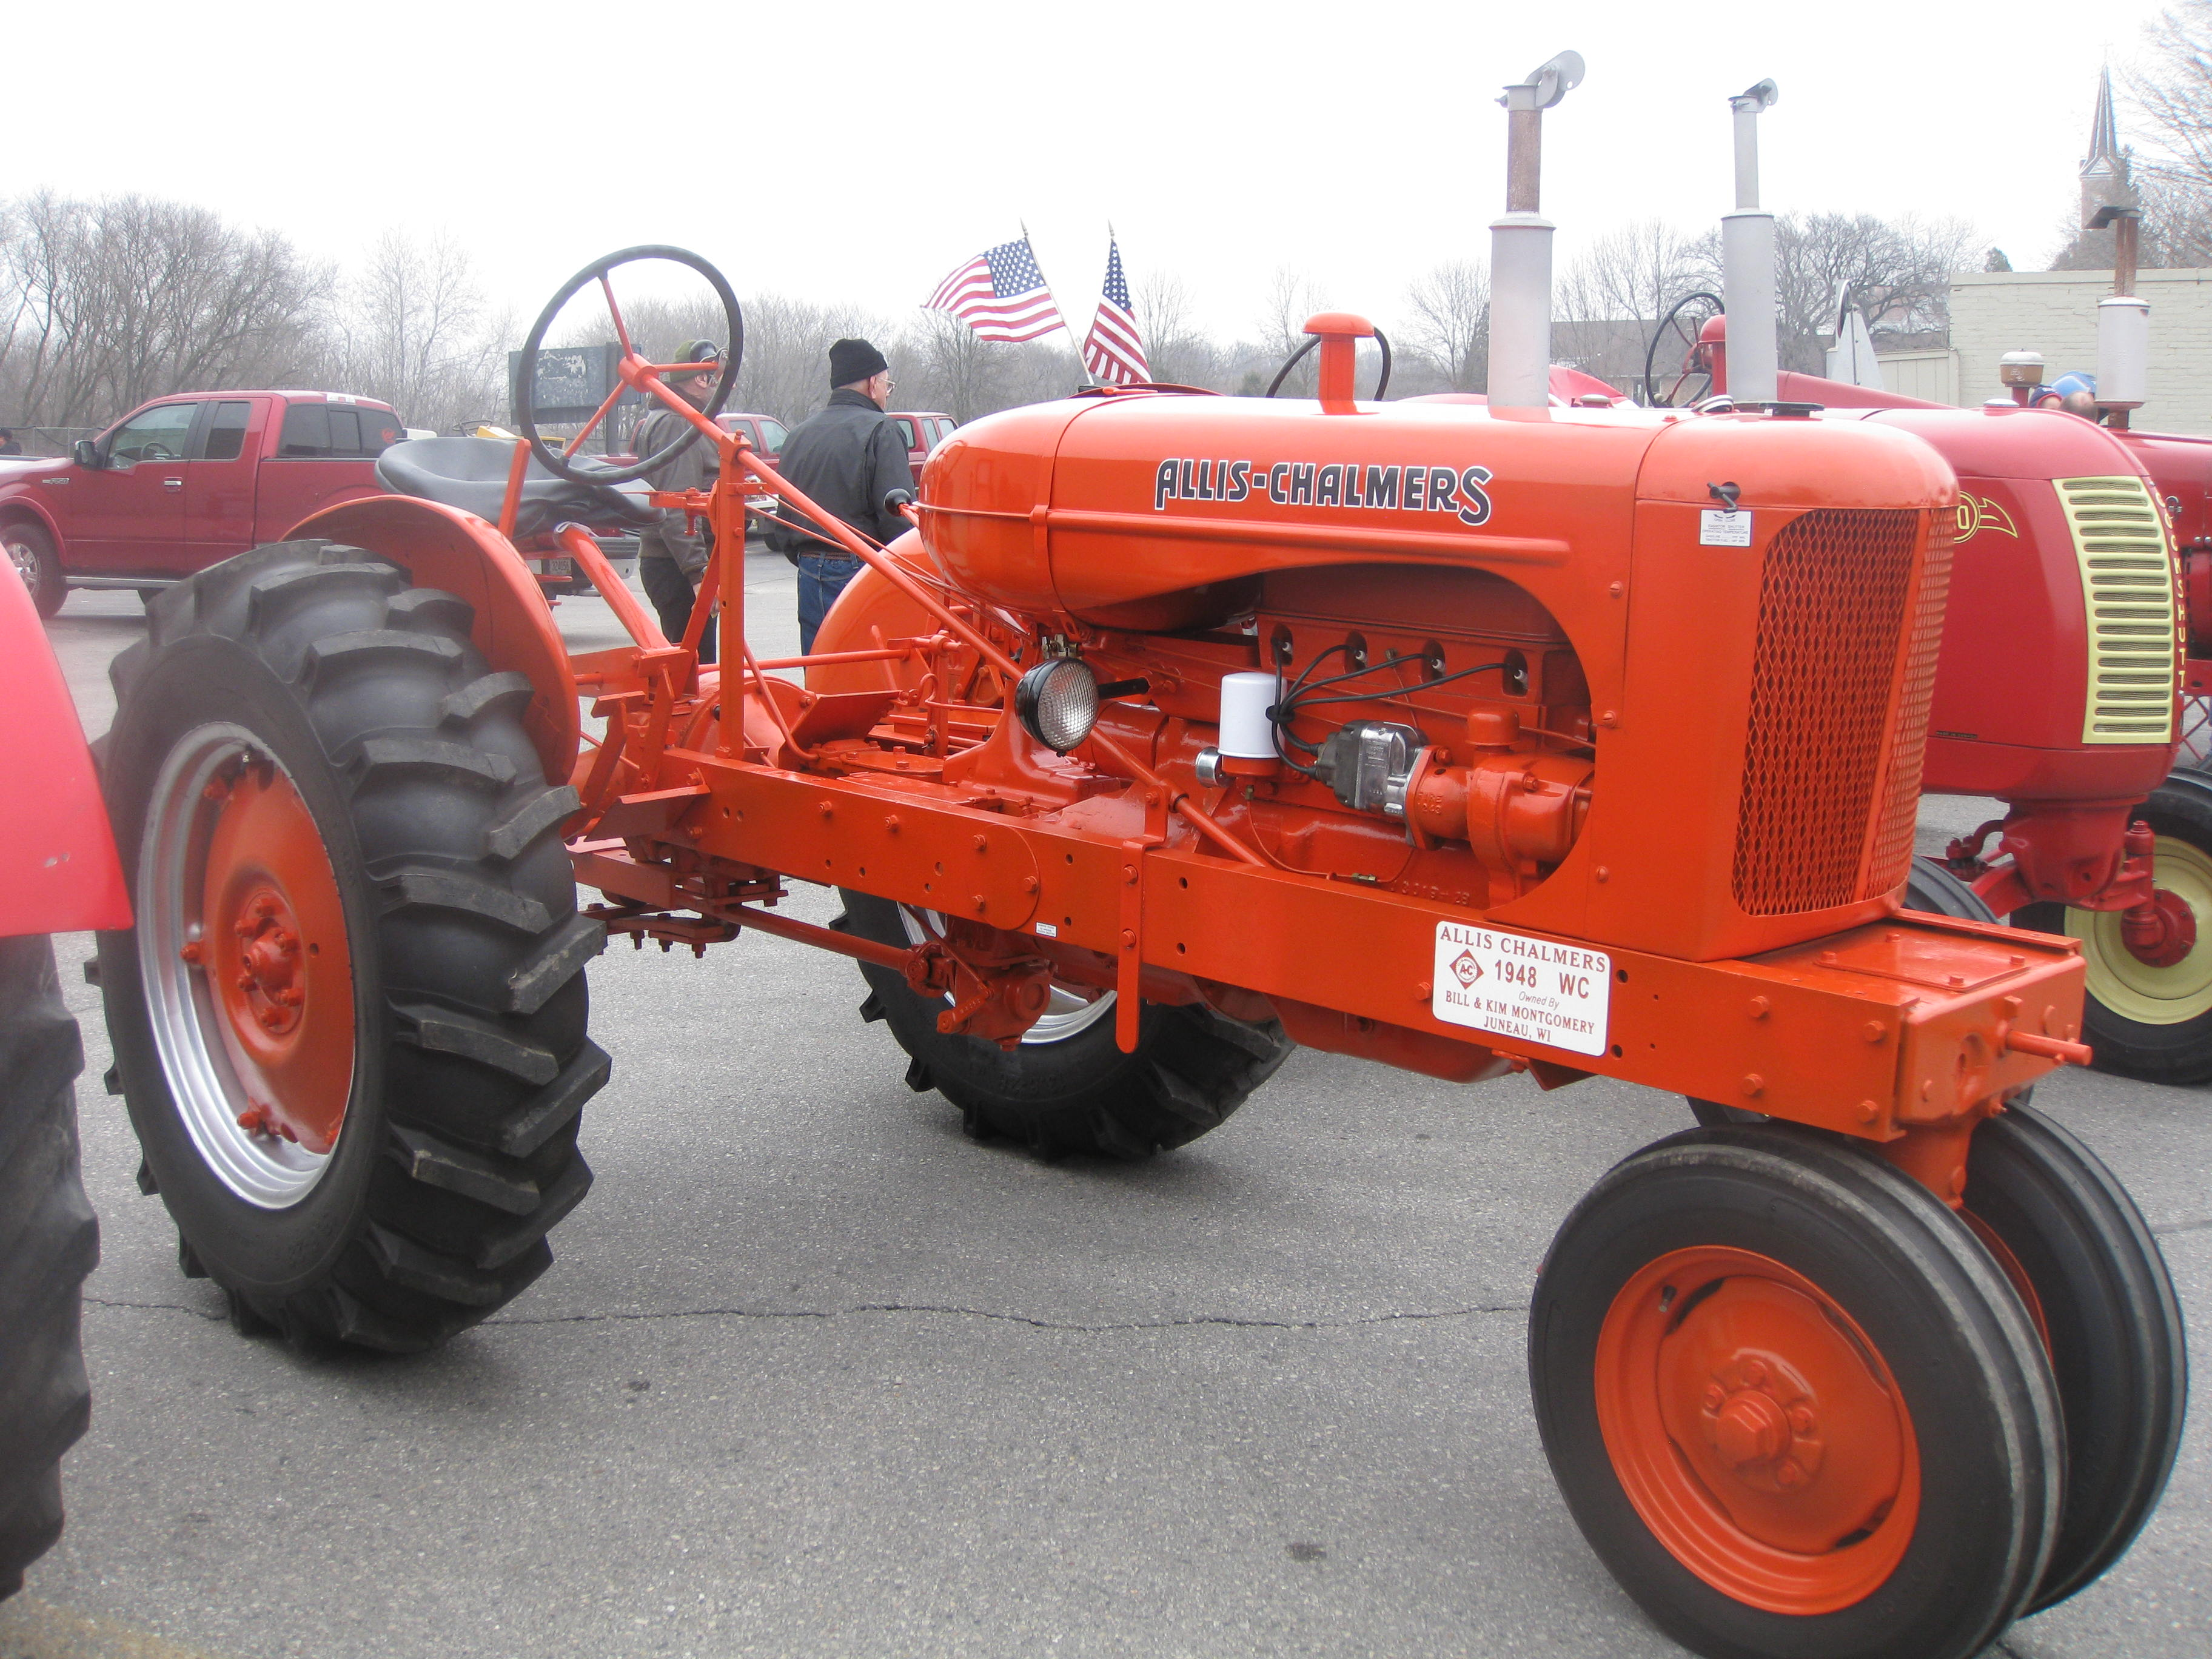 Allis-chalmers wc photo - 1